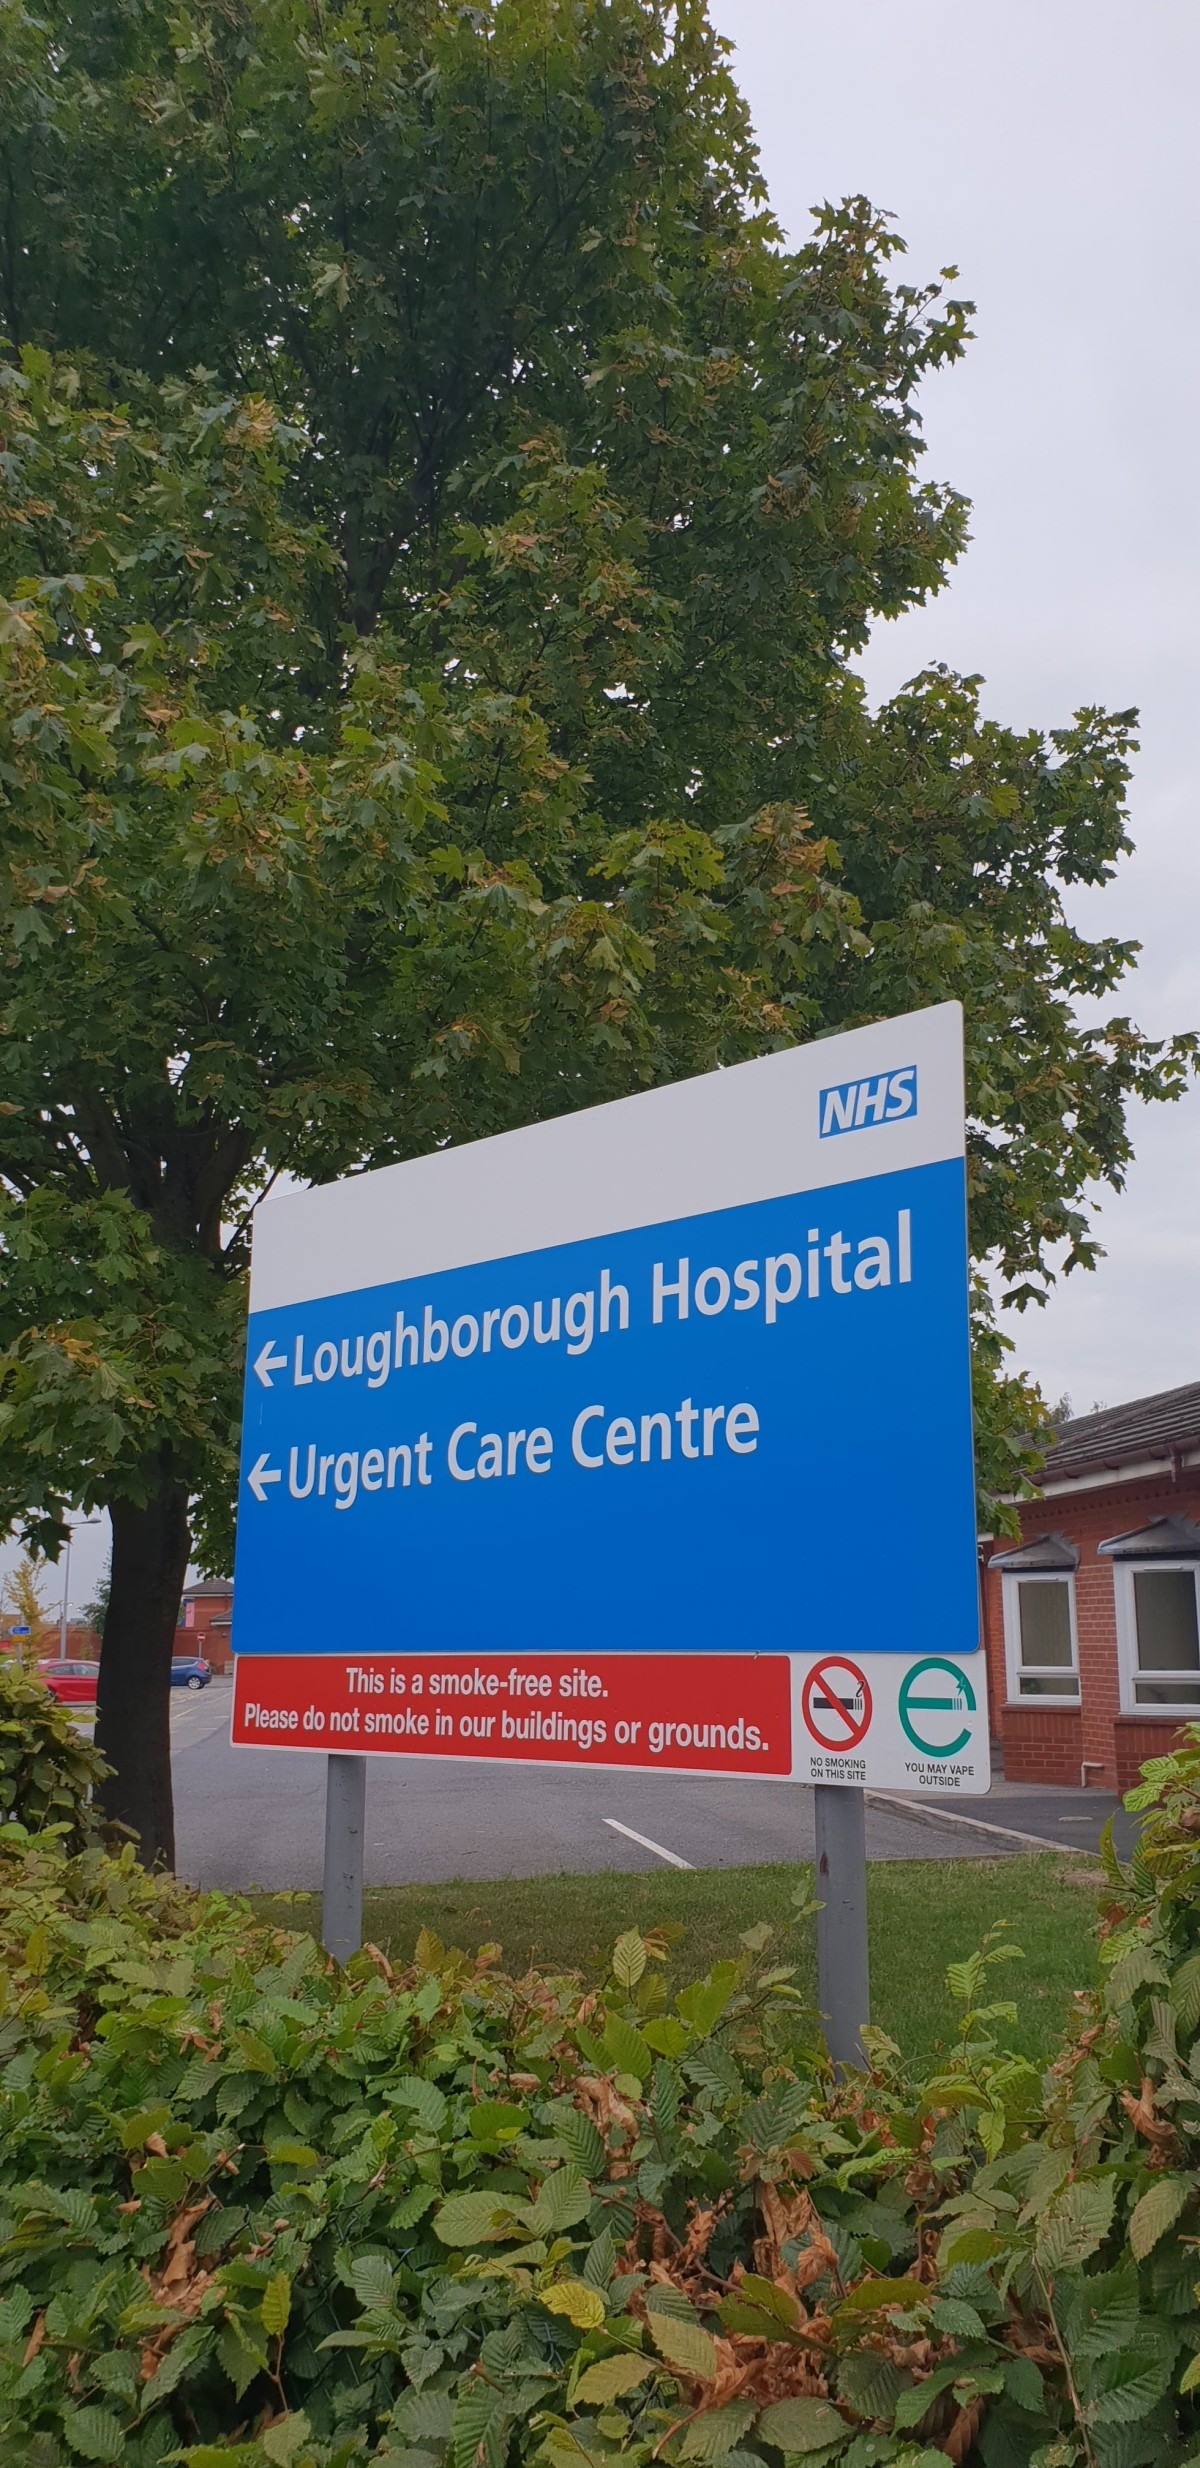 Let's build pressure to use our Loughborough Hospital to its full potential, sign my petition!